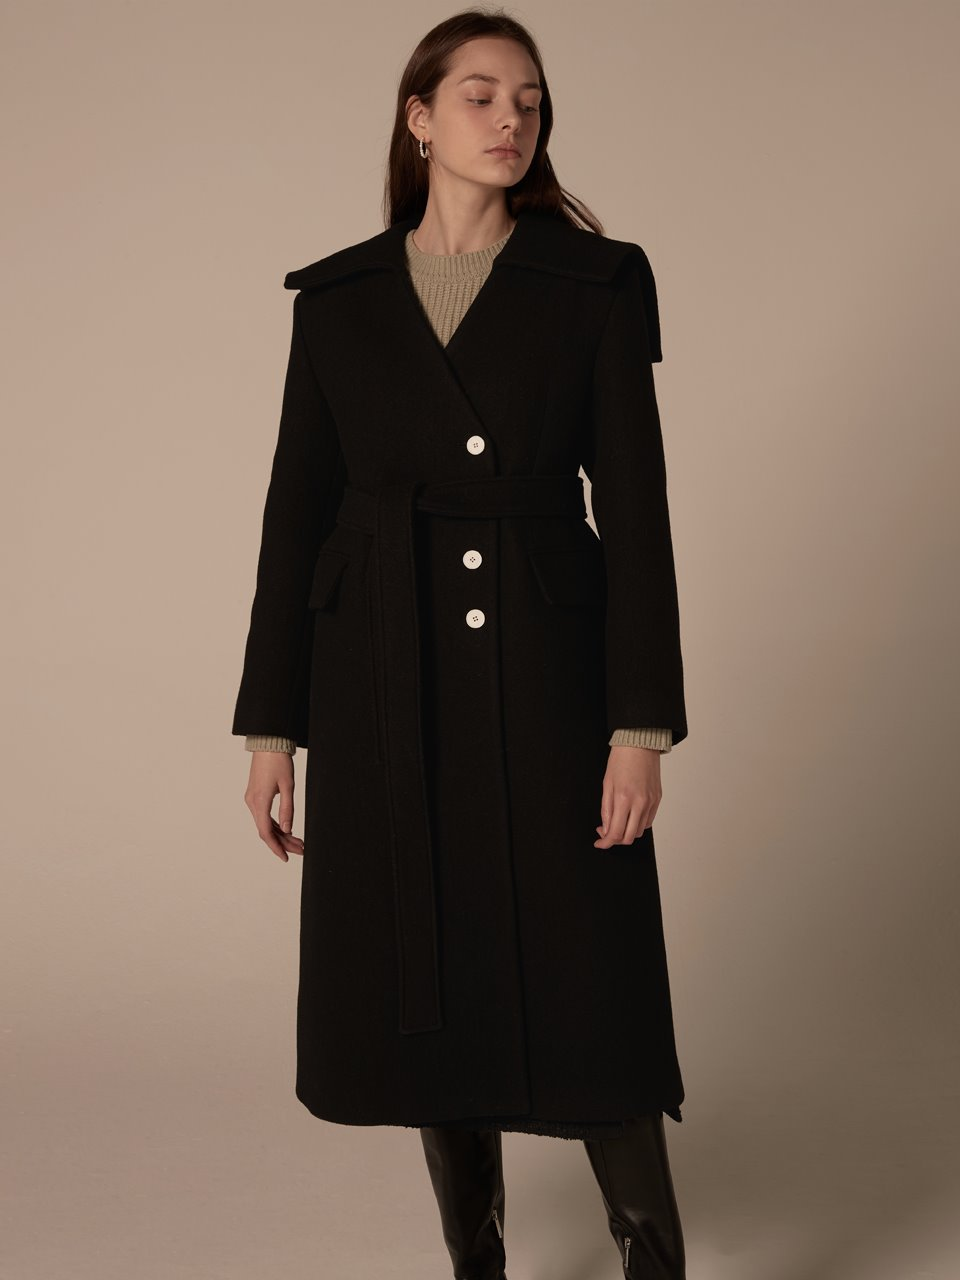 [예약발송] Sailor collar button coat - Black